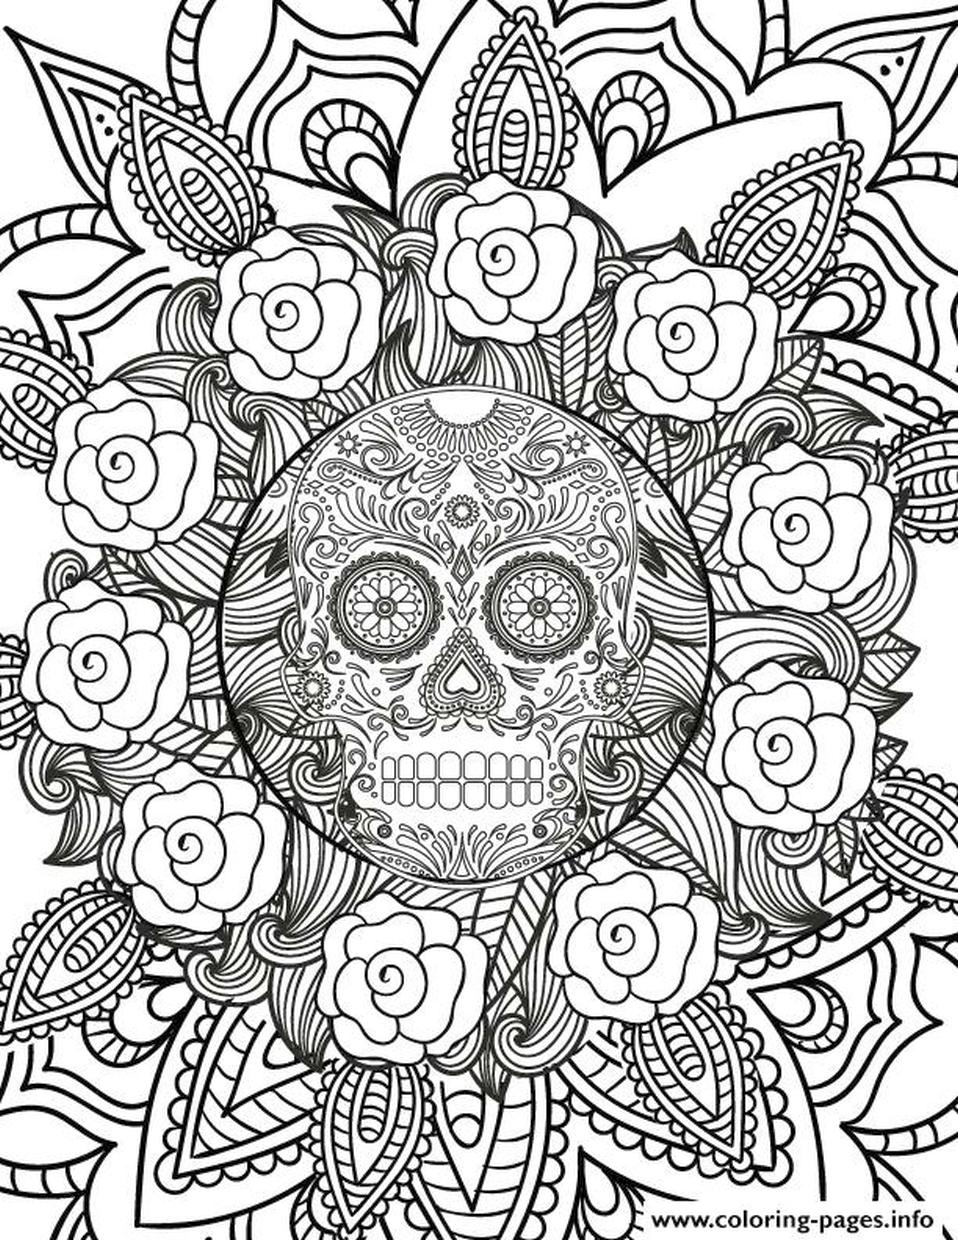 Hard Coloring Pictures for Adults Sugar Skull amd Flowerts